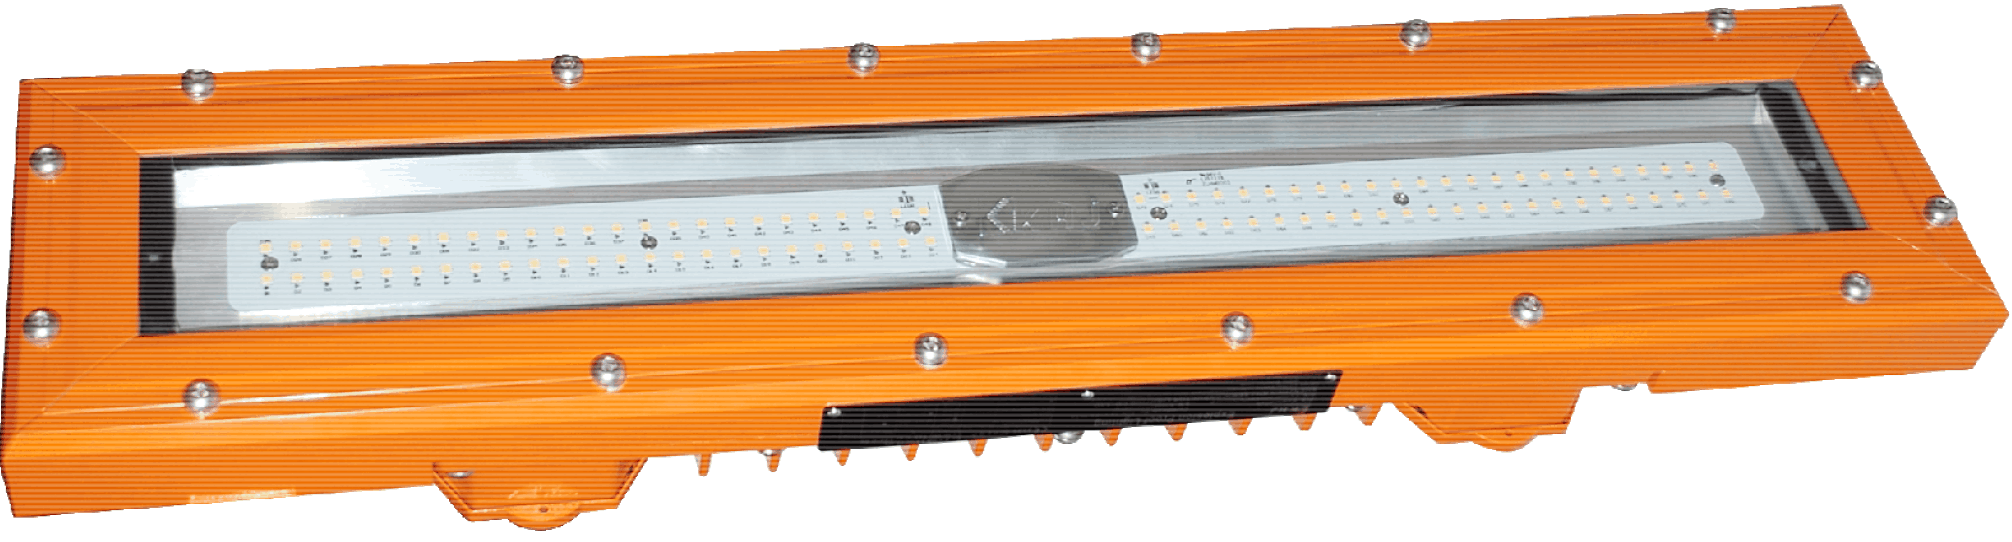 Ex-KSF18600 ATEX LED Lighting Swordfish 18W Emergency 180Mn